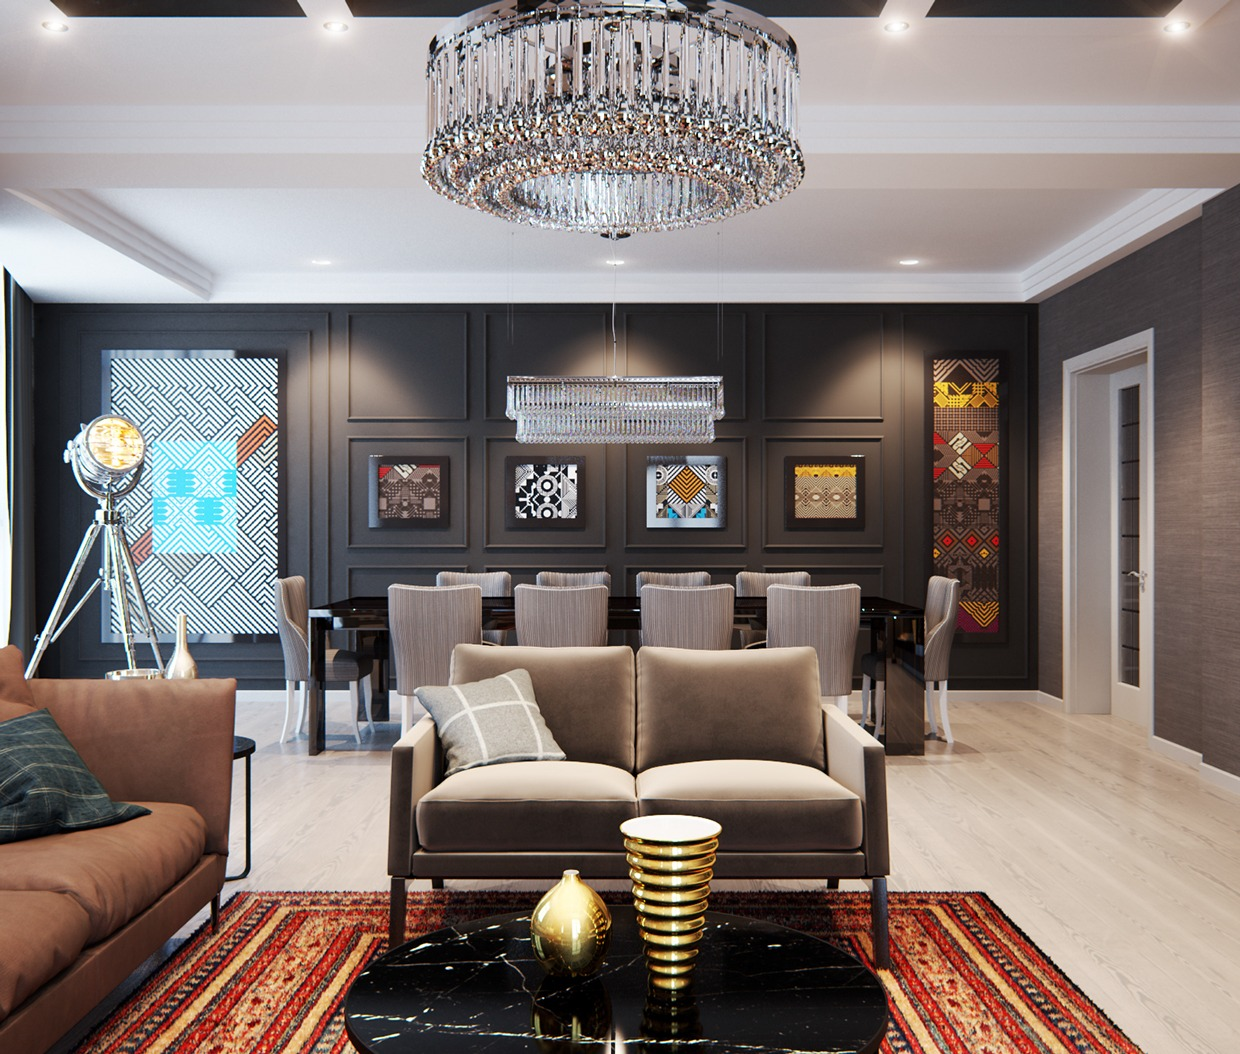 A Modern Interior Home Design Which Combining a Classic ... on Modern House Ideas Interior  id=96915